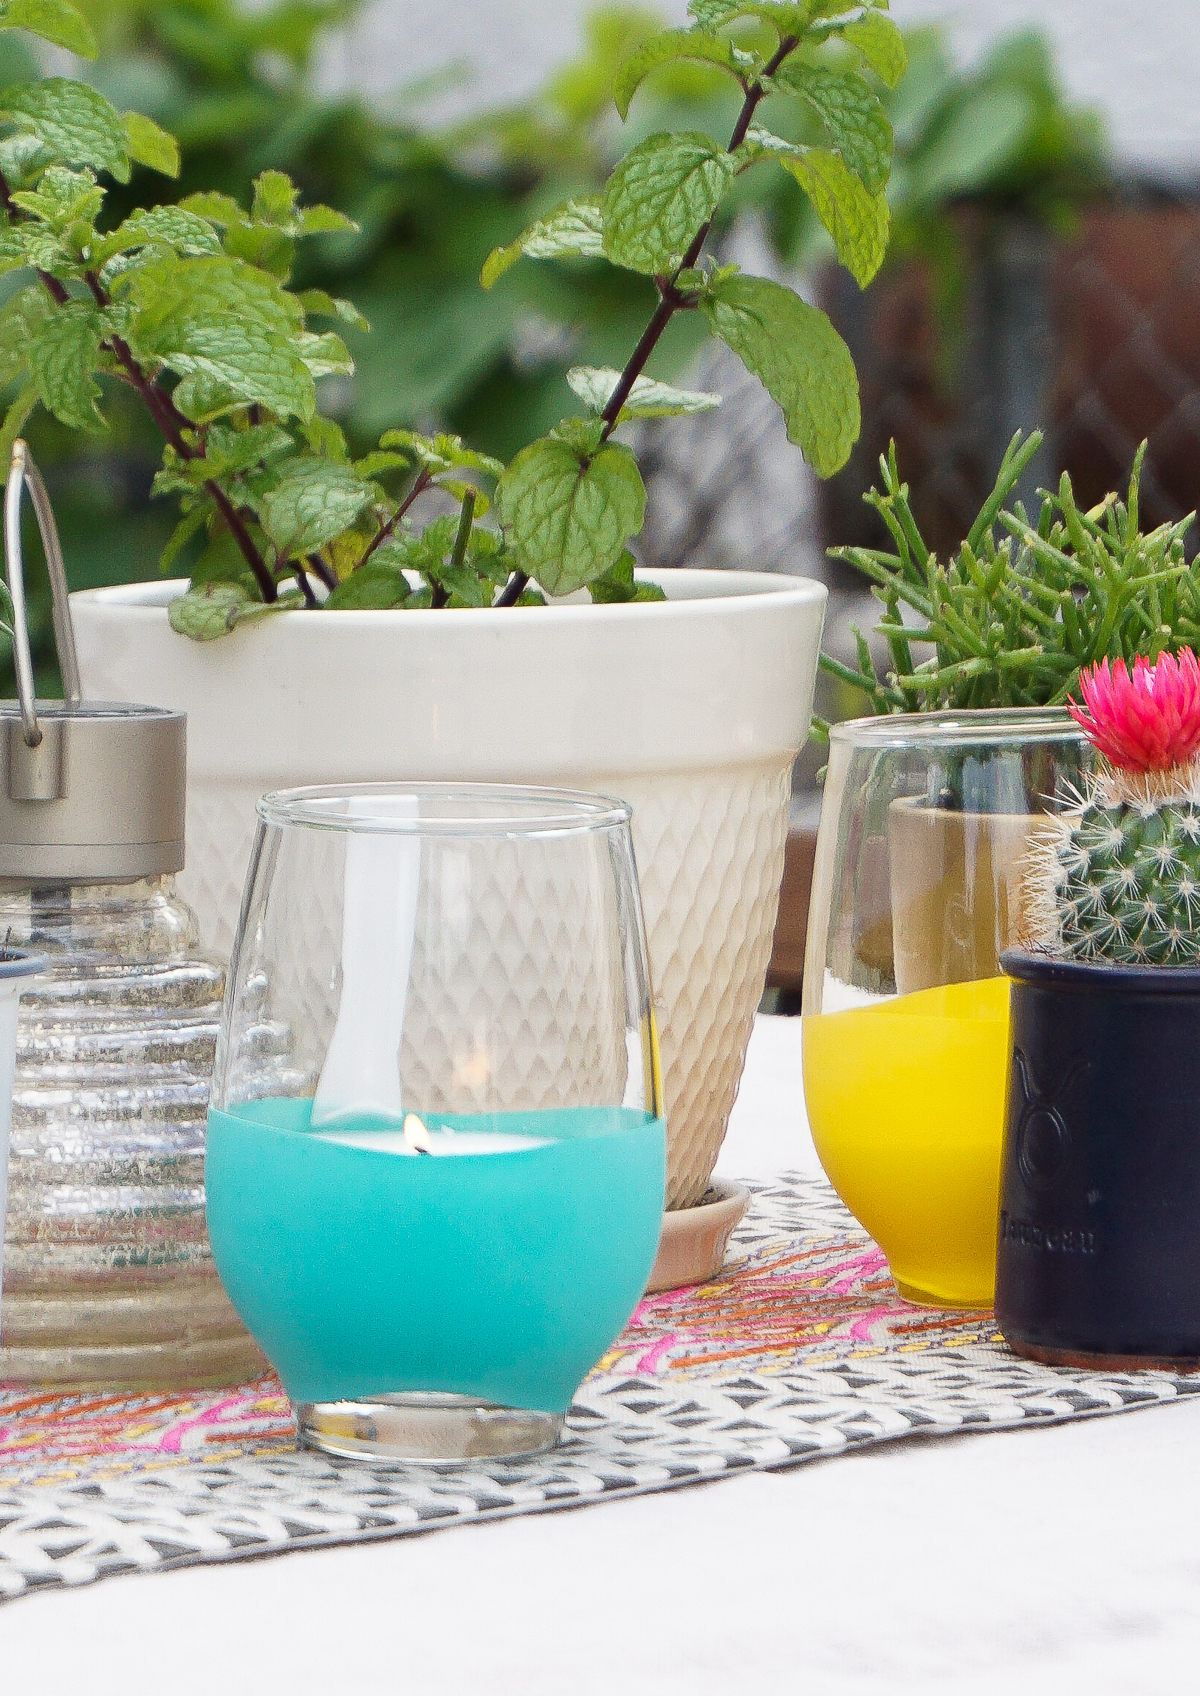 keep the bugs at bay with diy citronella candles